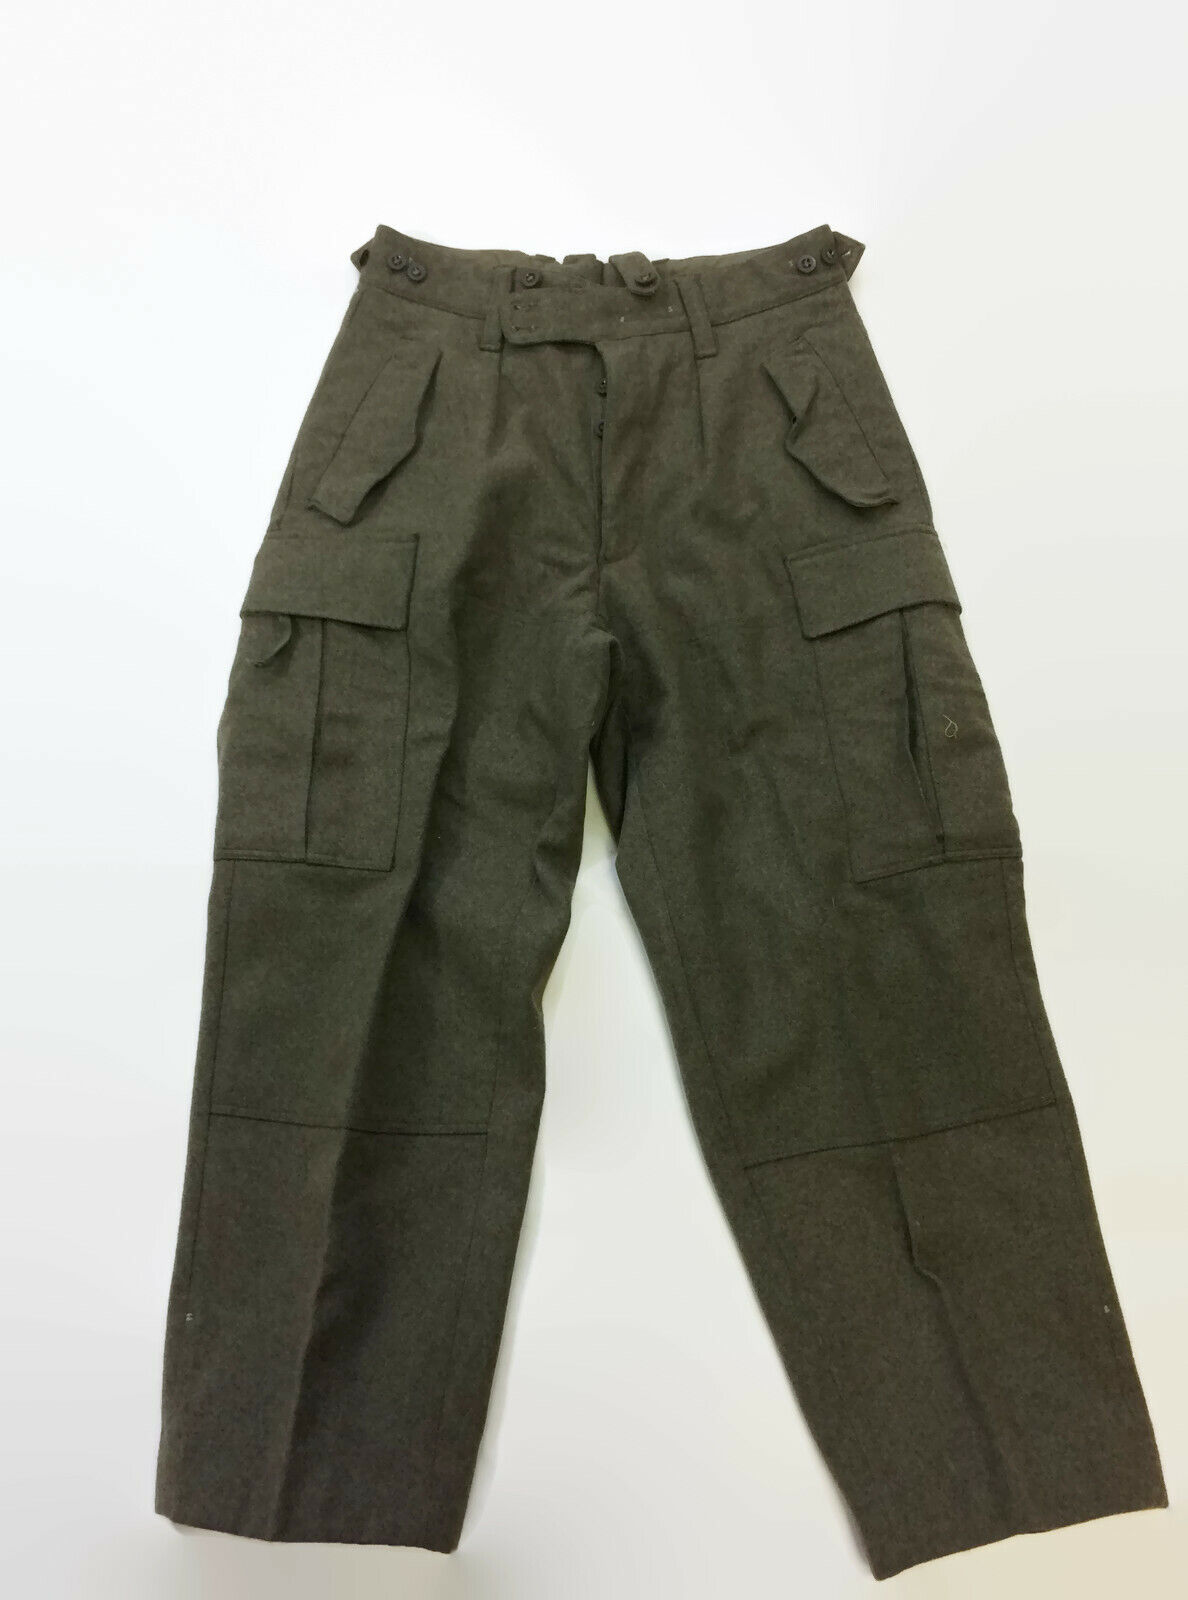 Striwa German Olive Green Wool Army Pants Excellent Condition 32 W 26 Inseam